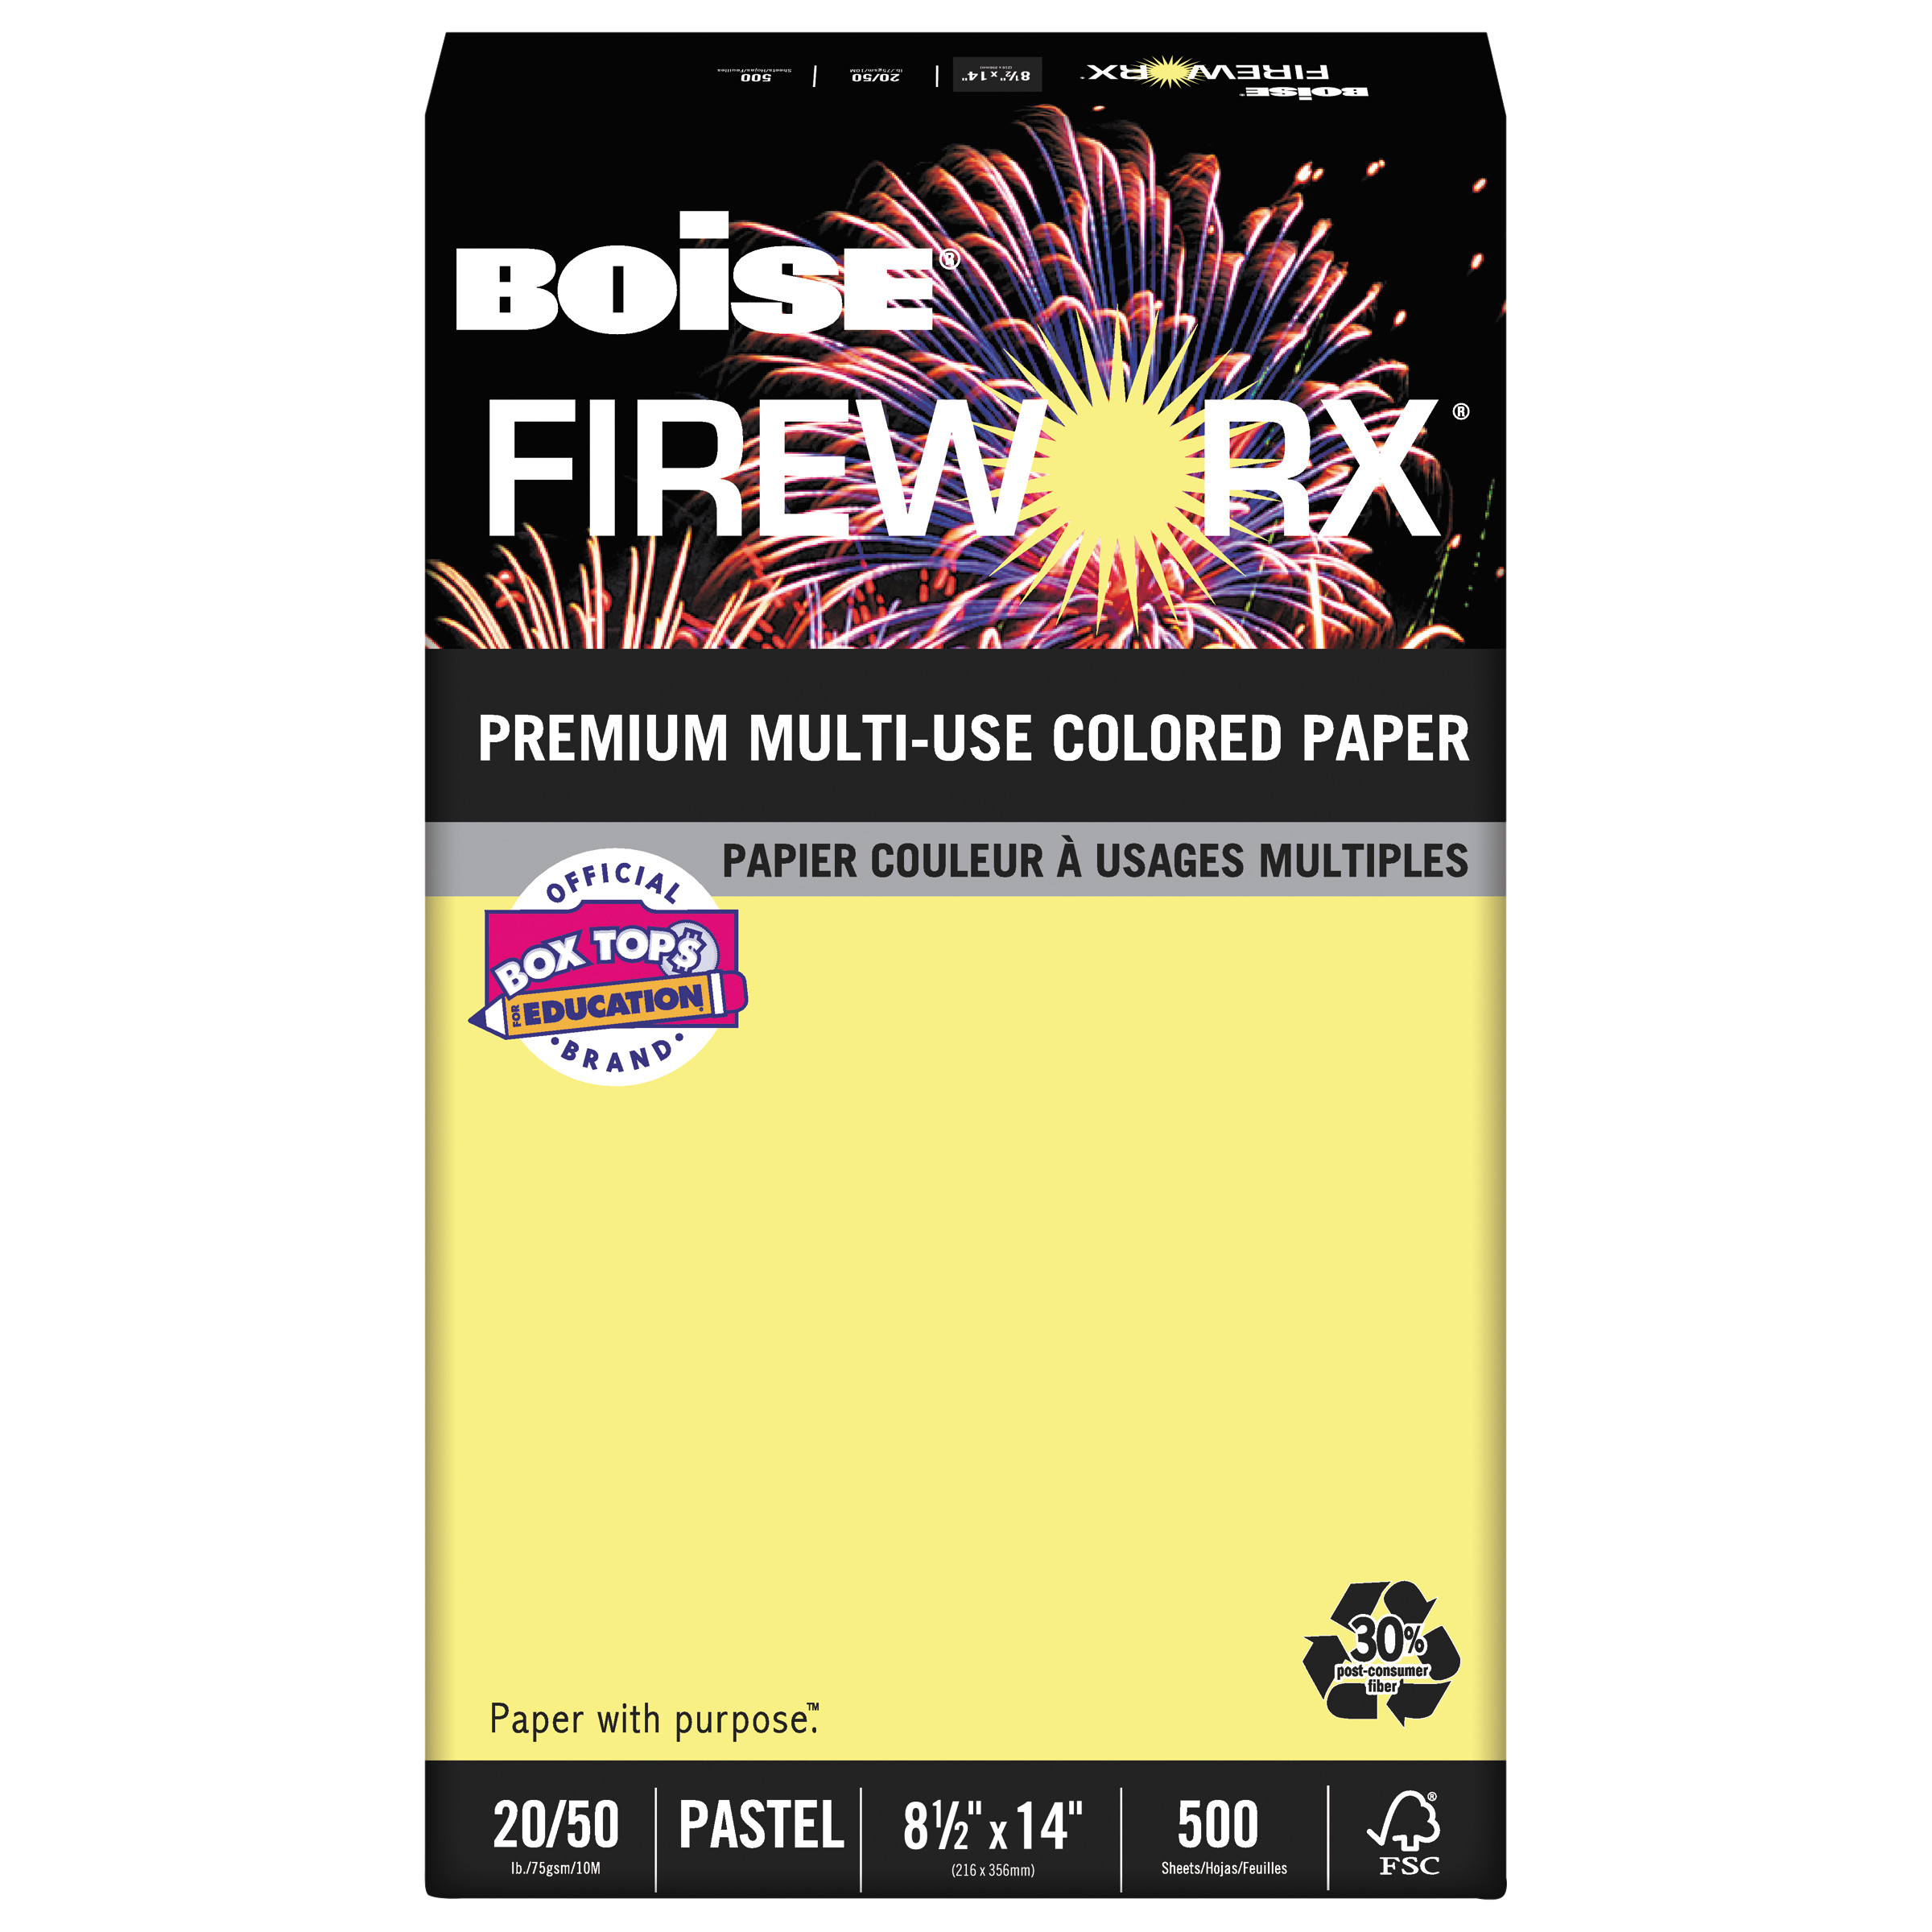 Boise FIREWORX Colored Paper, 20lb, 8-1/2 x 14, Crackling Canary, 500 Sheets/Ream -CASMP2204CY